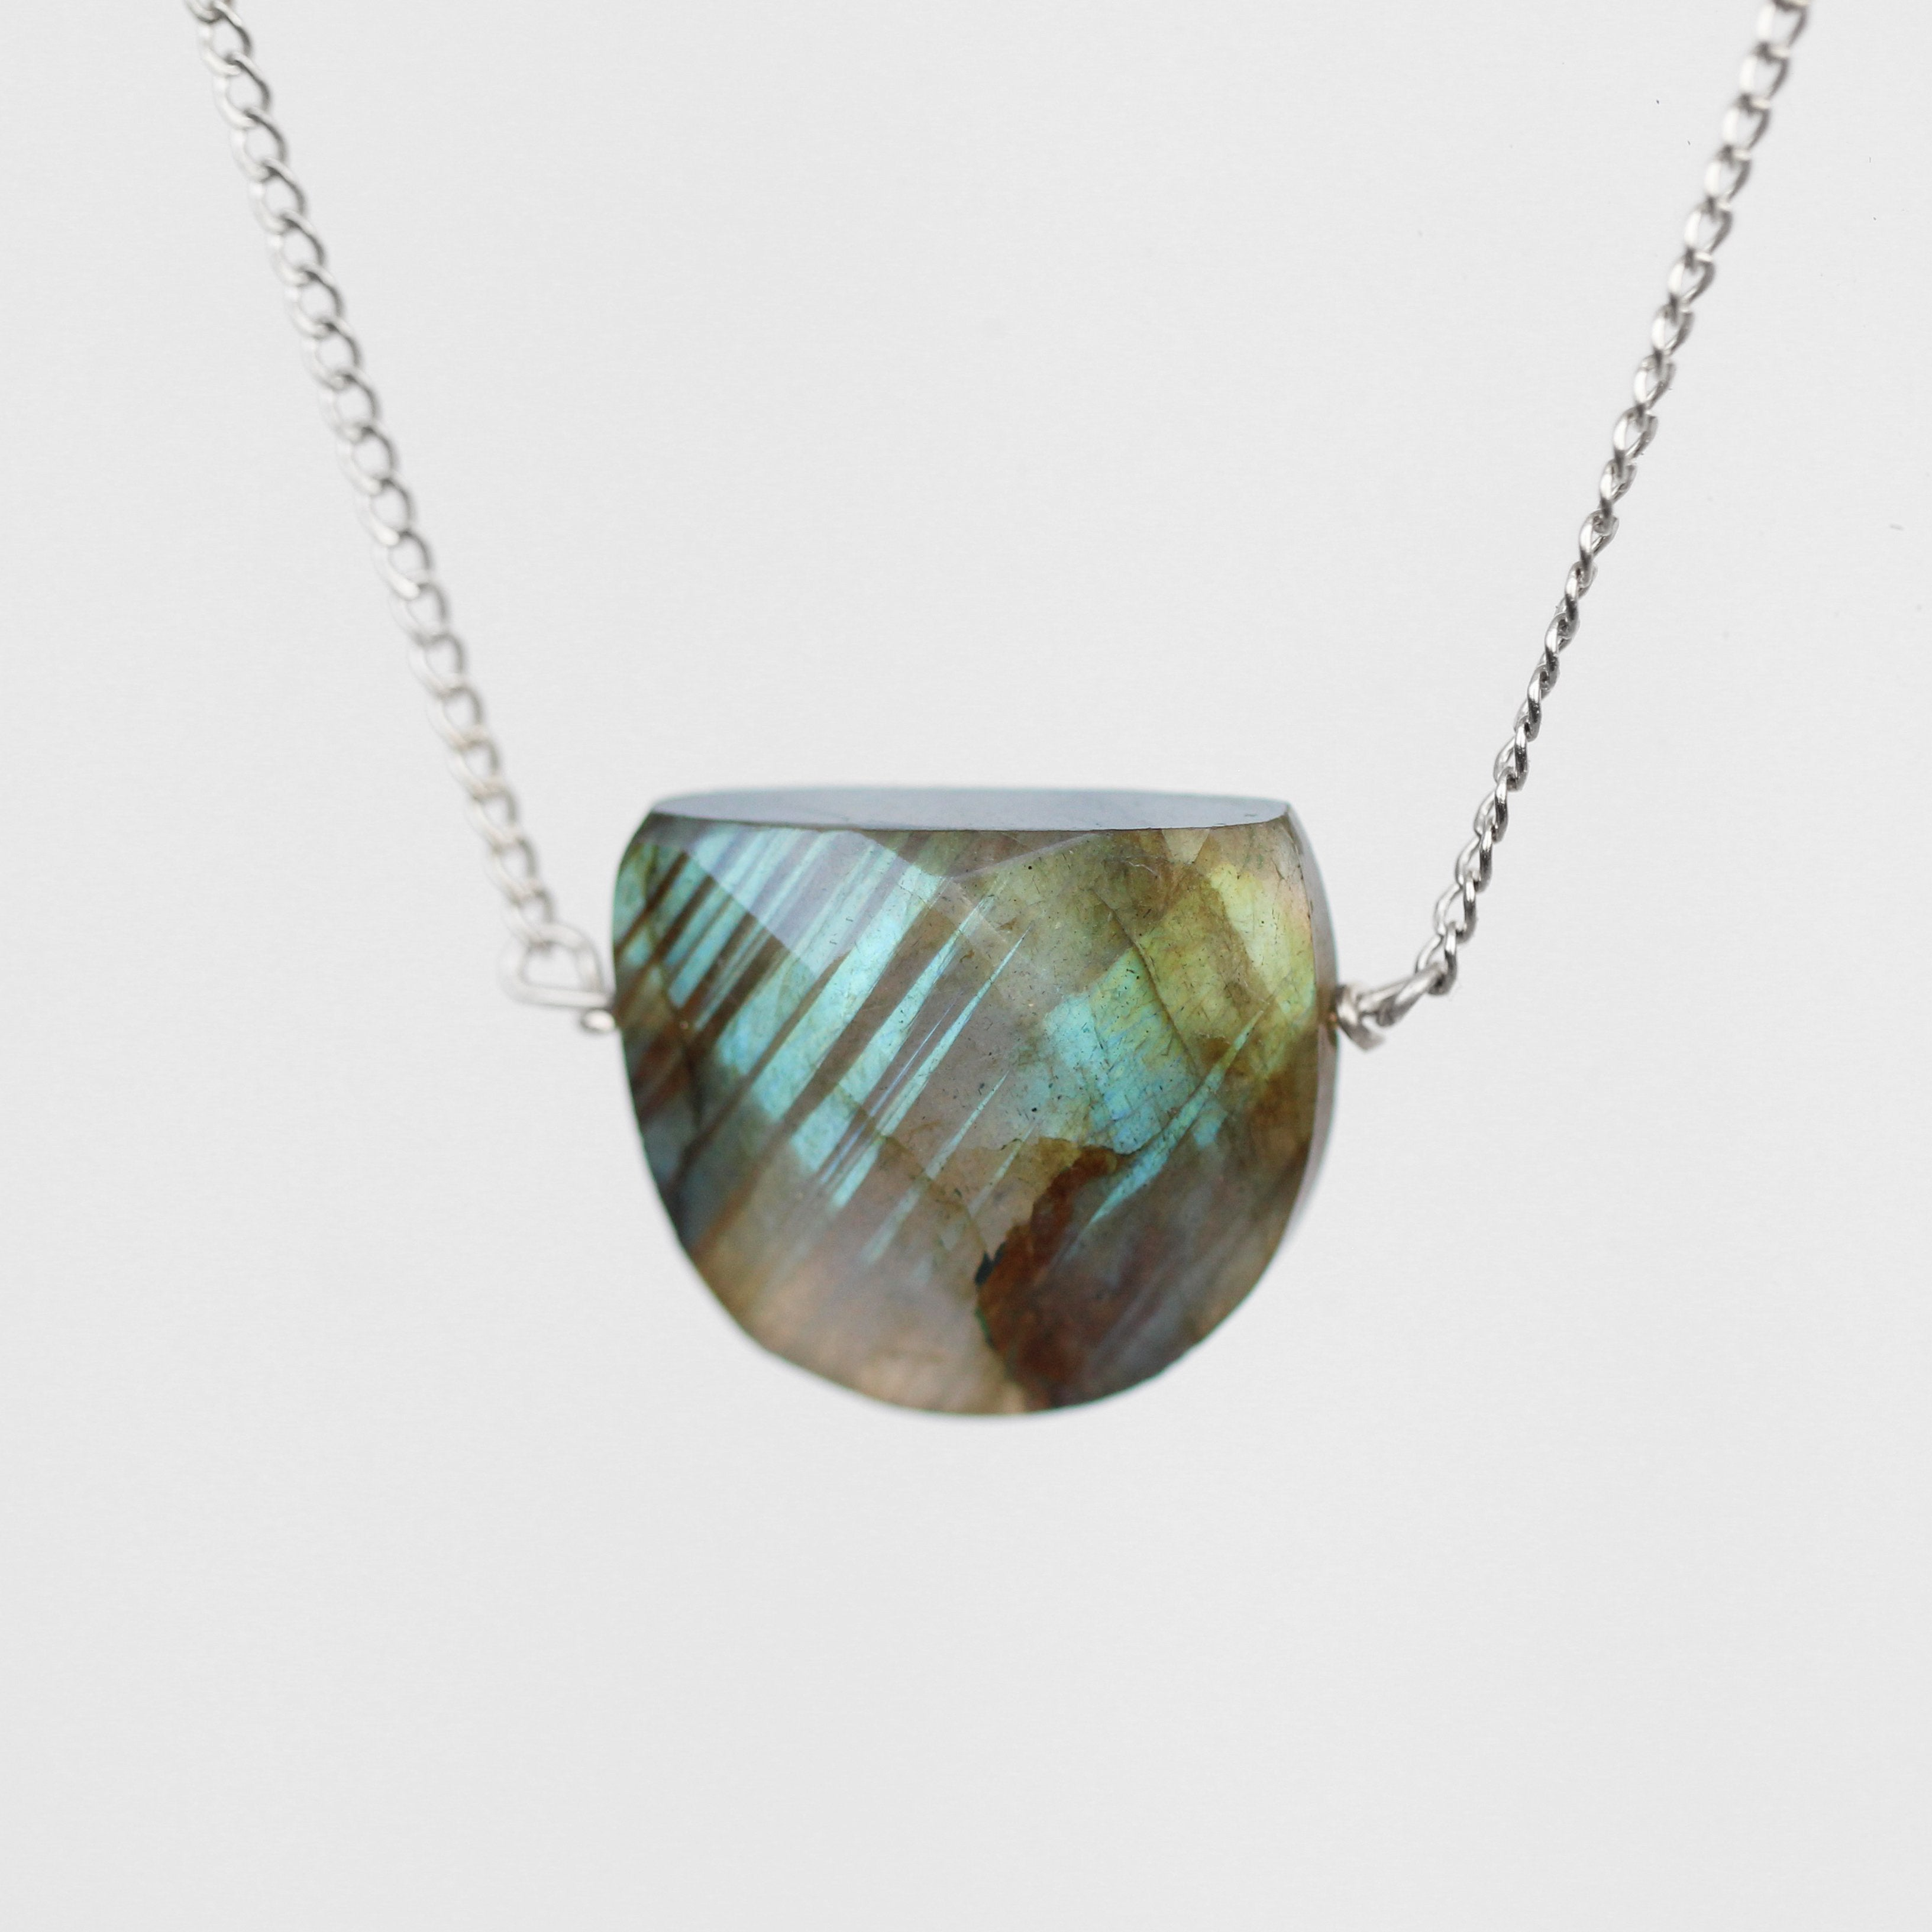 Labradorite Half Moon Pendant Necklace with 14k Yellow Gold Fill or Sterling Chain - Celestial Diamonds ® by Midwinter Co.